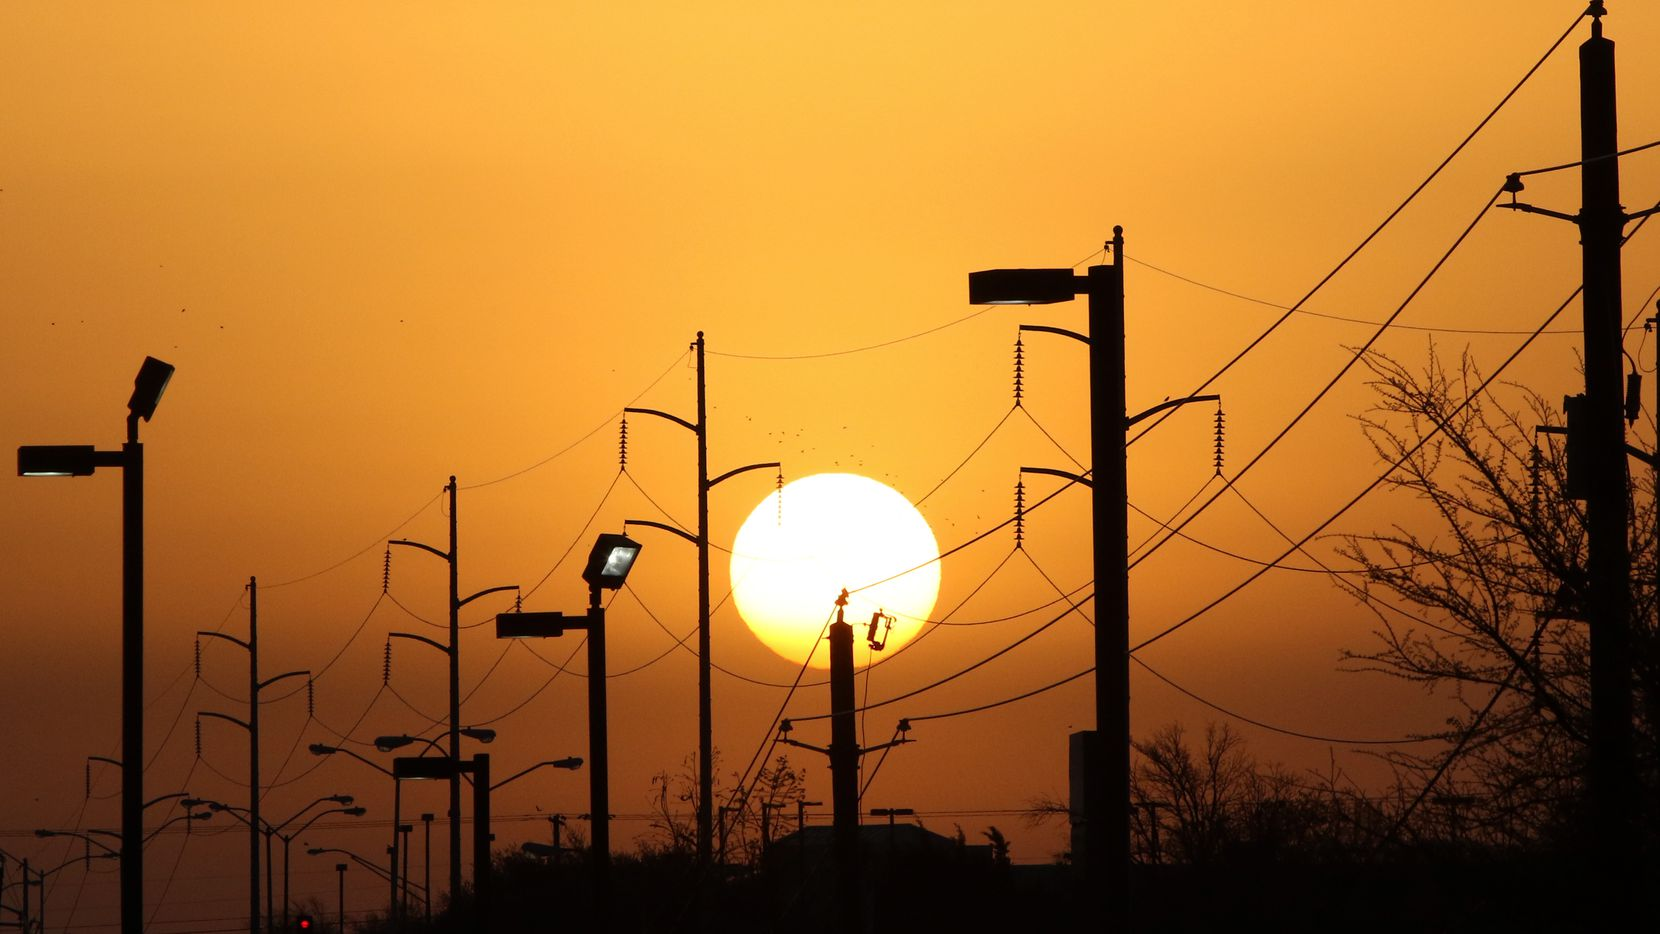 Overhead power lines and light poles are silhouetted as the morning sun rises over Camp Wisdom Road in Dallas on Sunday, March 20, 2016. (Irwin Thompson/The Dallas Morning News)